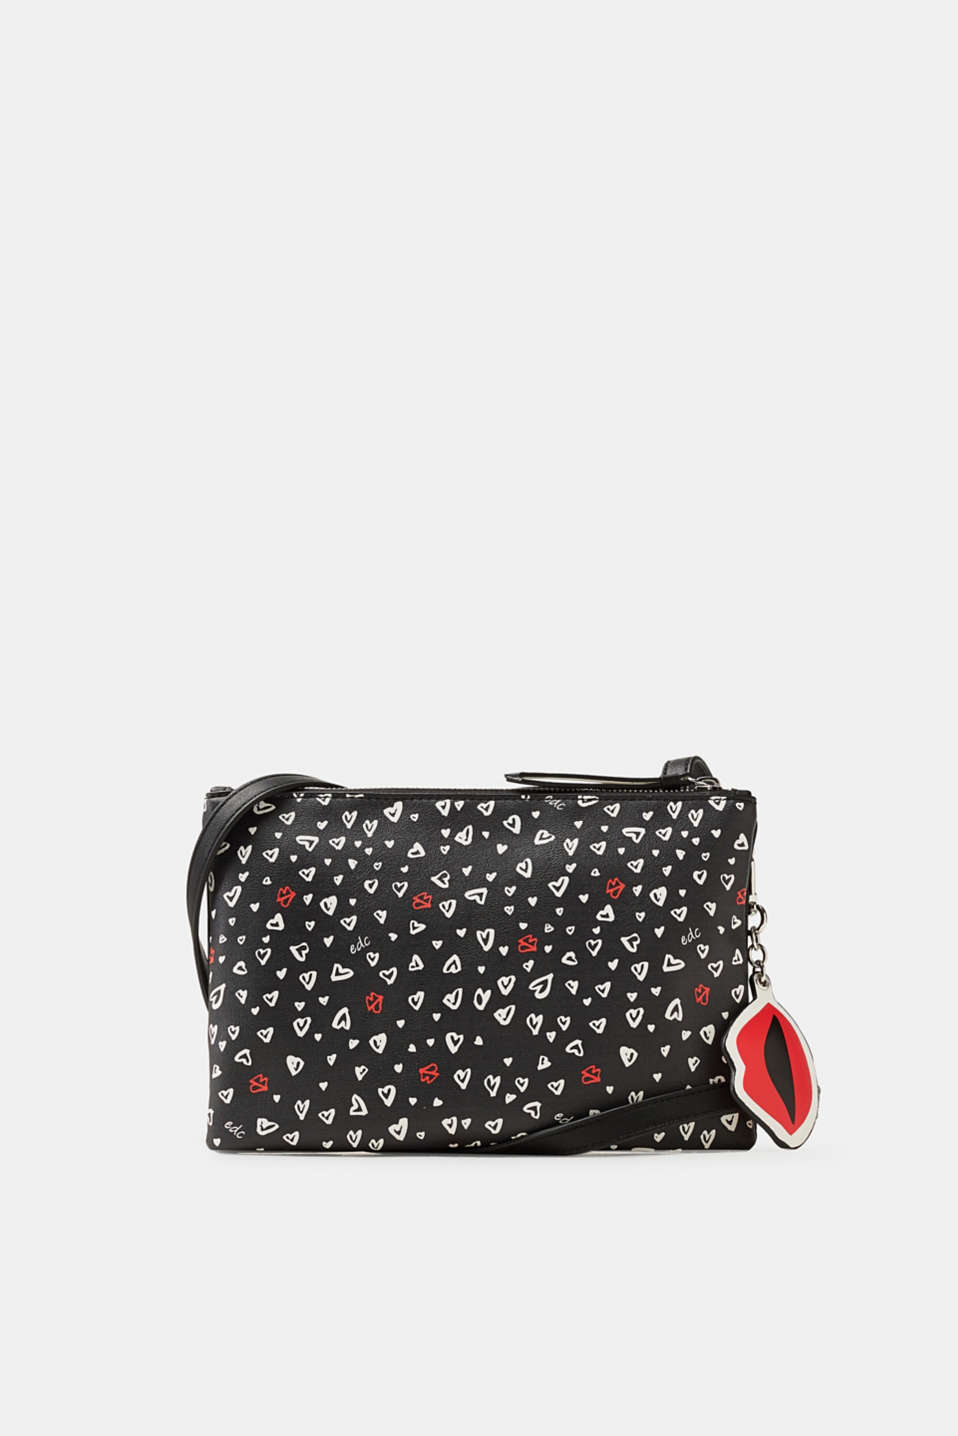 Printed hearts and a lip pendant: this faux leather shoulder bag impresses with a charming print.